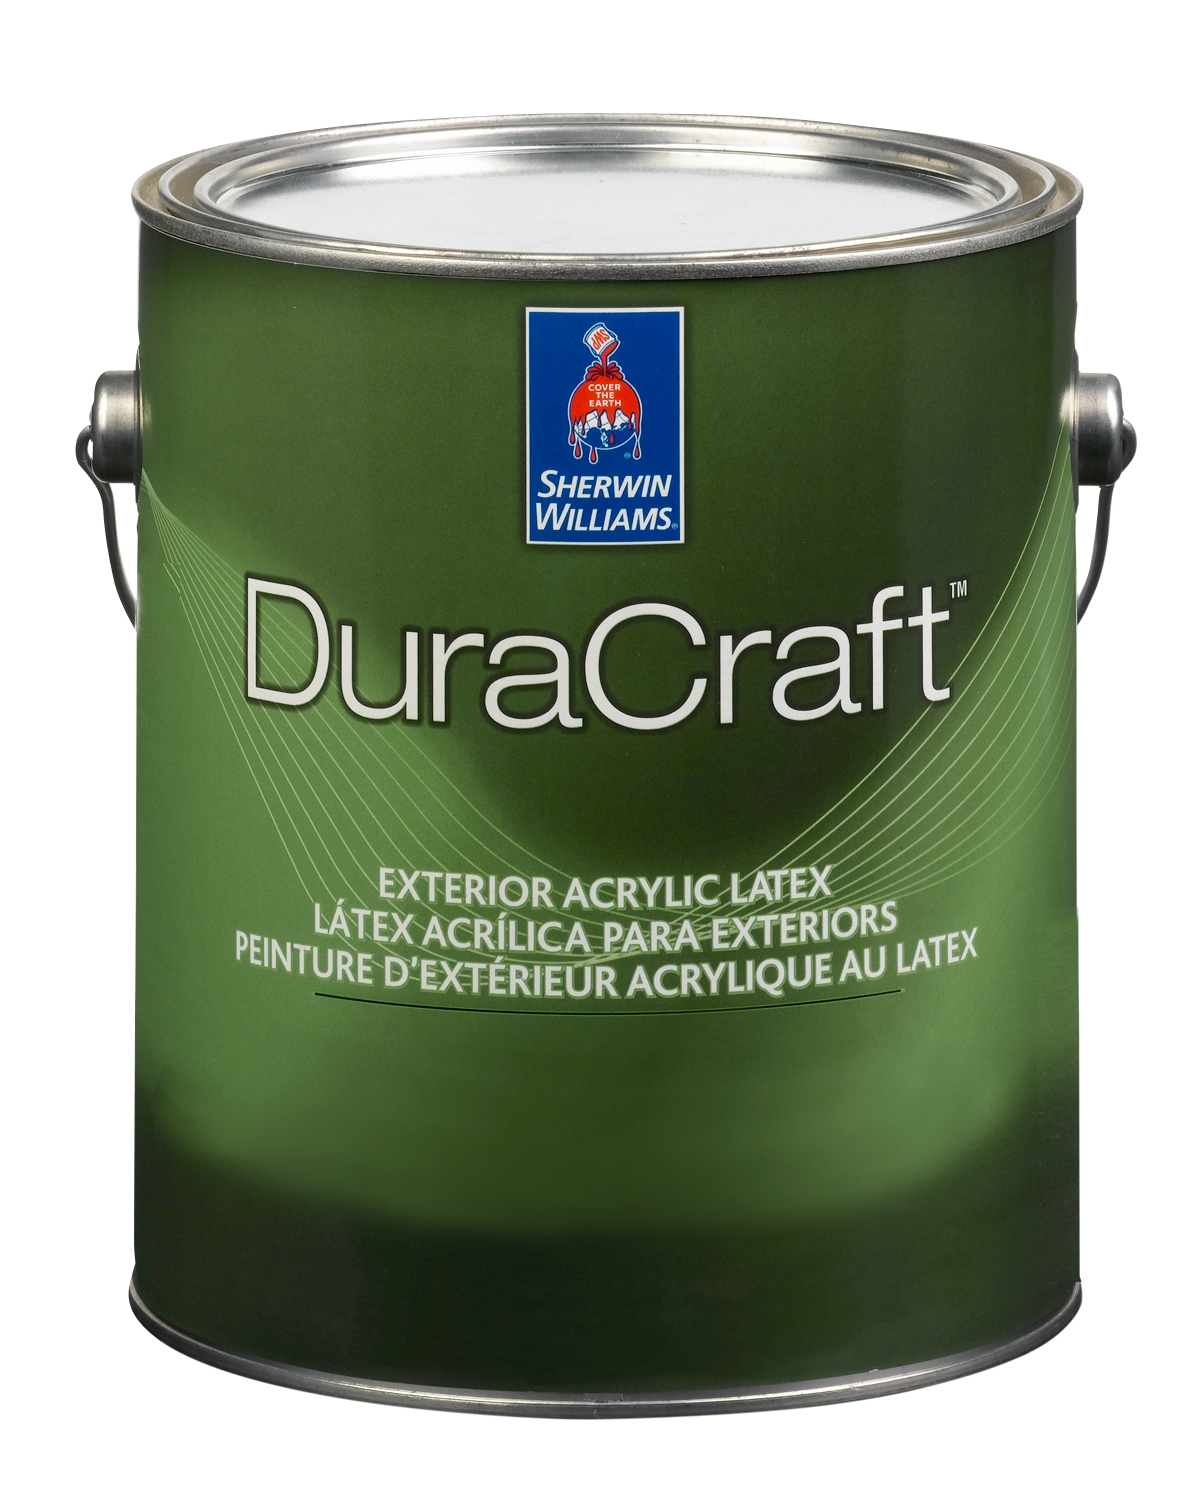 DuraCraft™ Exterior Acrylic Latex